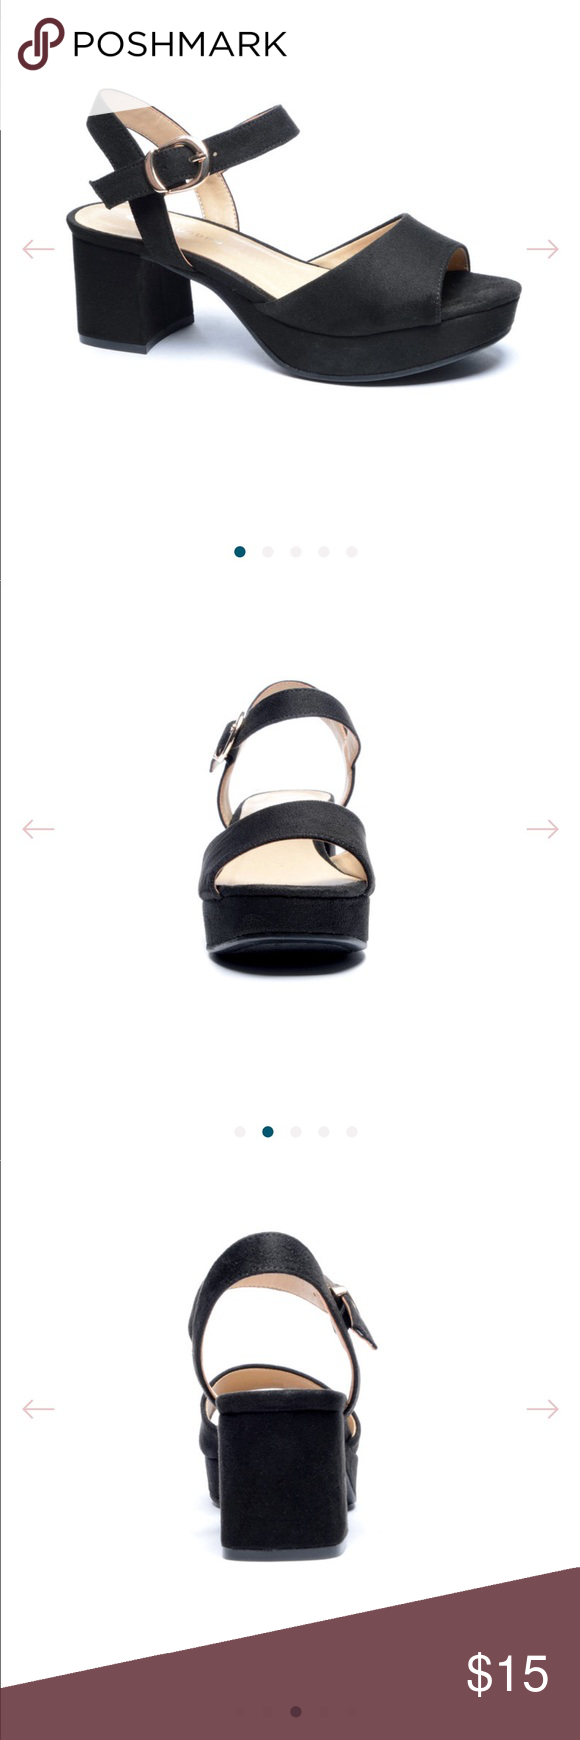 d960592e9a2 CL by Laundry Kensie Sandal Worn once to try on